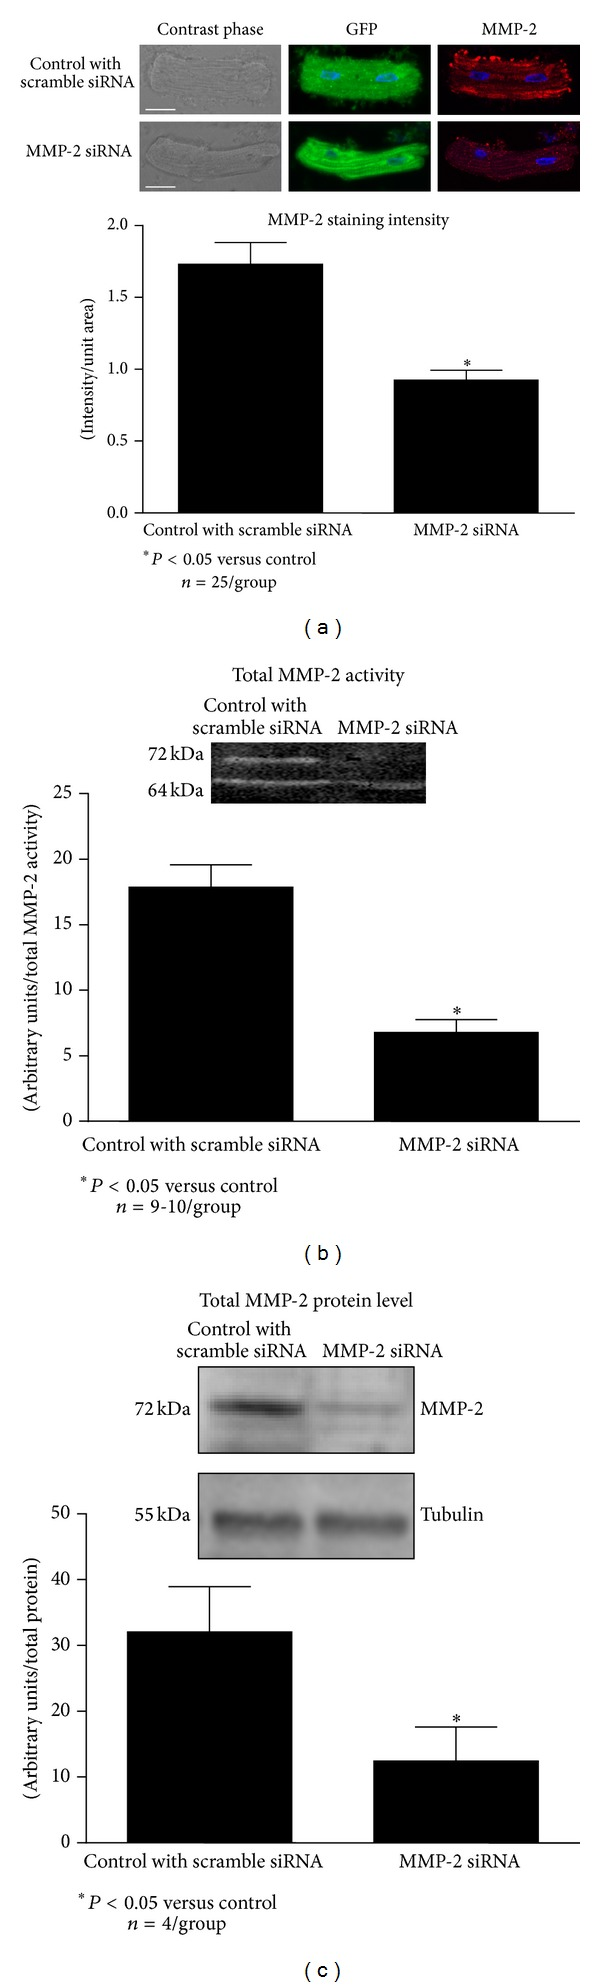 Effect of MMP-2 siRNA transfection on MMP-2 expression in isolated cardiomyocytes. (a) Efficiency of siRNA transfection and MMP-2 protein levels measured by immunocytochemistry. Scale bar, 50 μ m. (b) Measurement of MMP-2 gelatinolytic activity by zymography. (c) MMP-2 protein level. (a) n = 25 cells from 3 different hearts per group; n = 9-10 heart isolates per group for MMP-2 activity (b), in (c) n = 4 heart isolates per group, * P